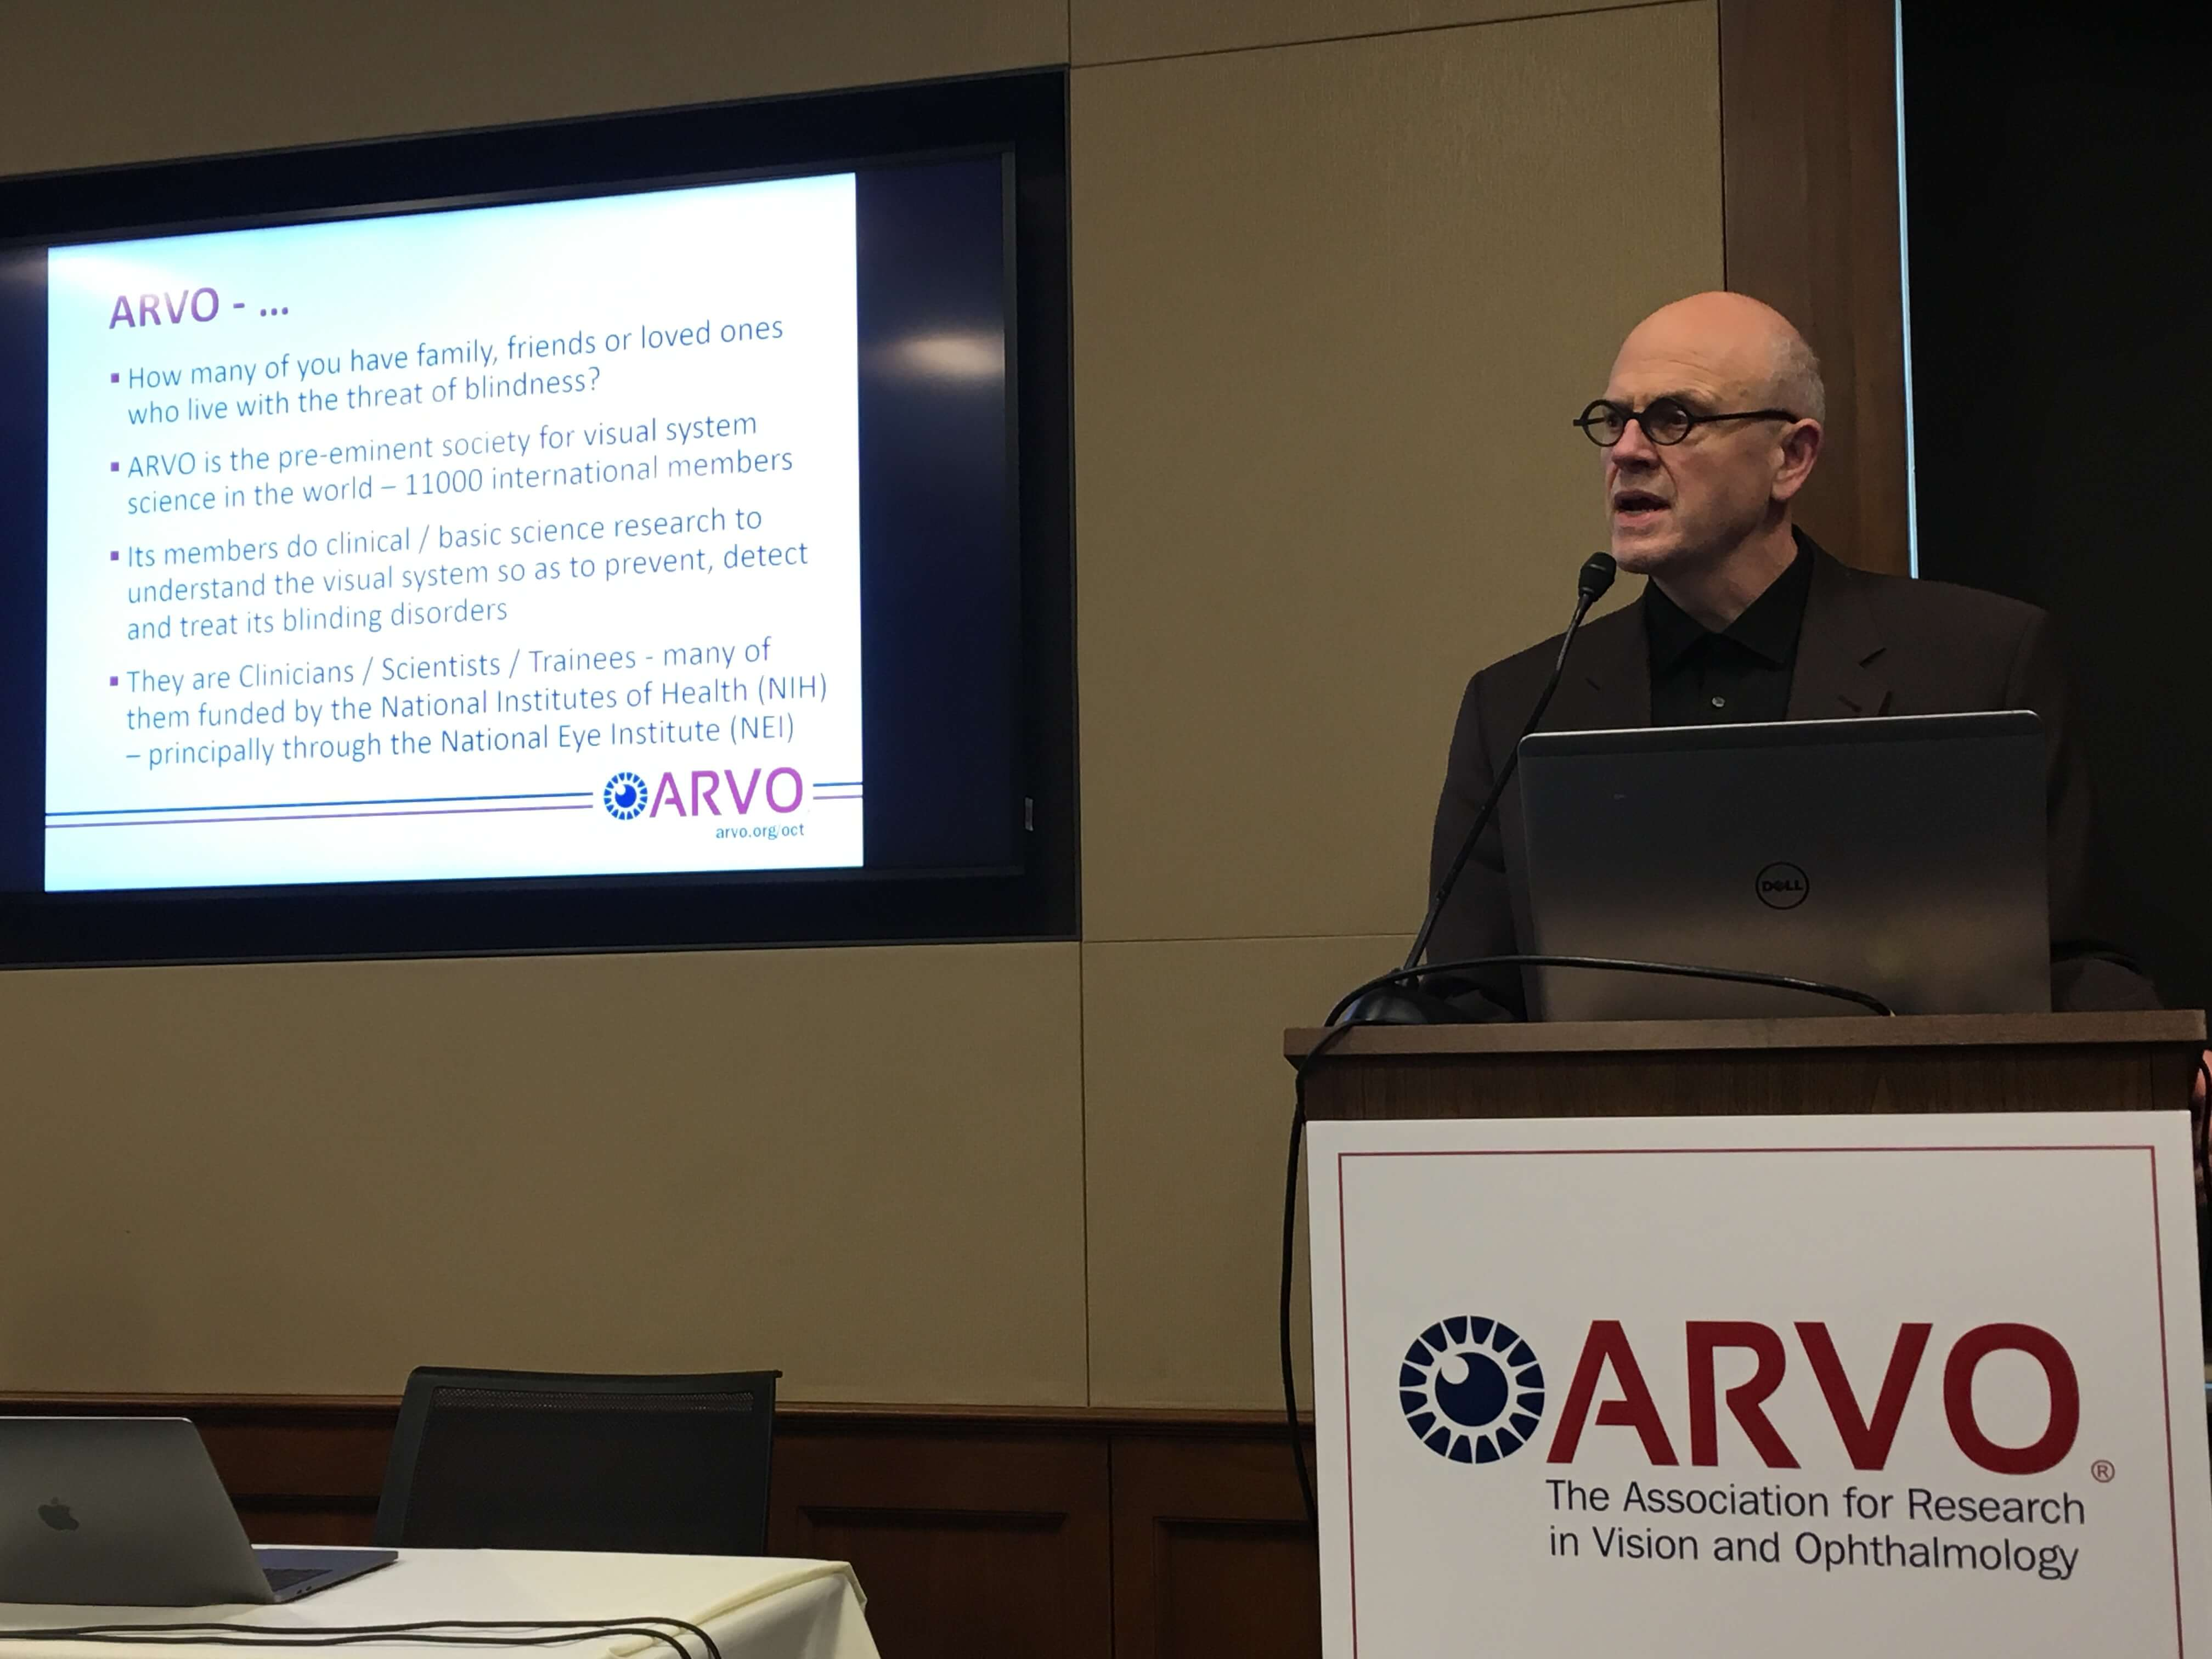 ARVO 2017 Congressional briefing